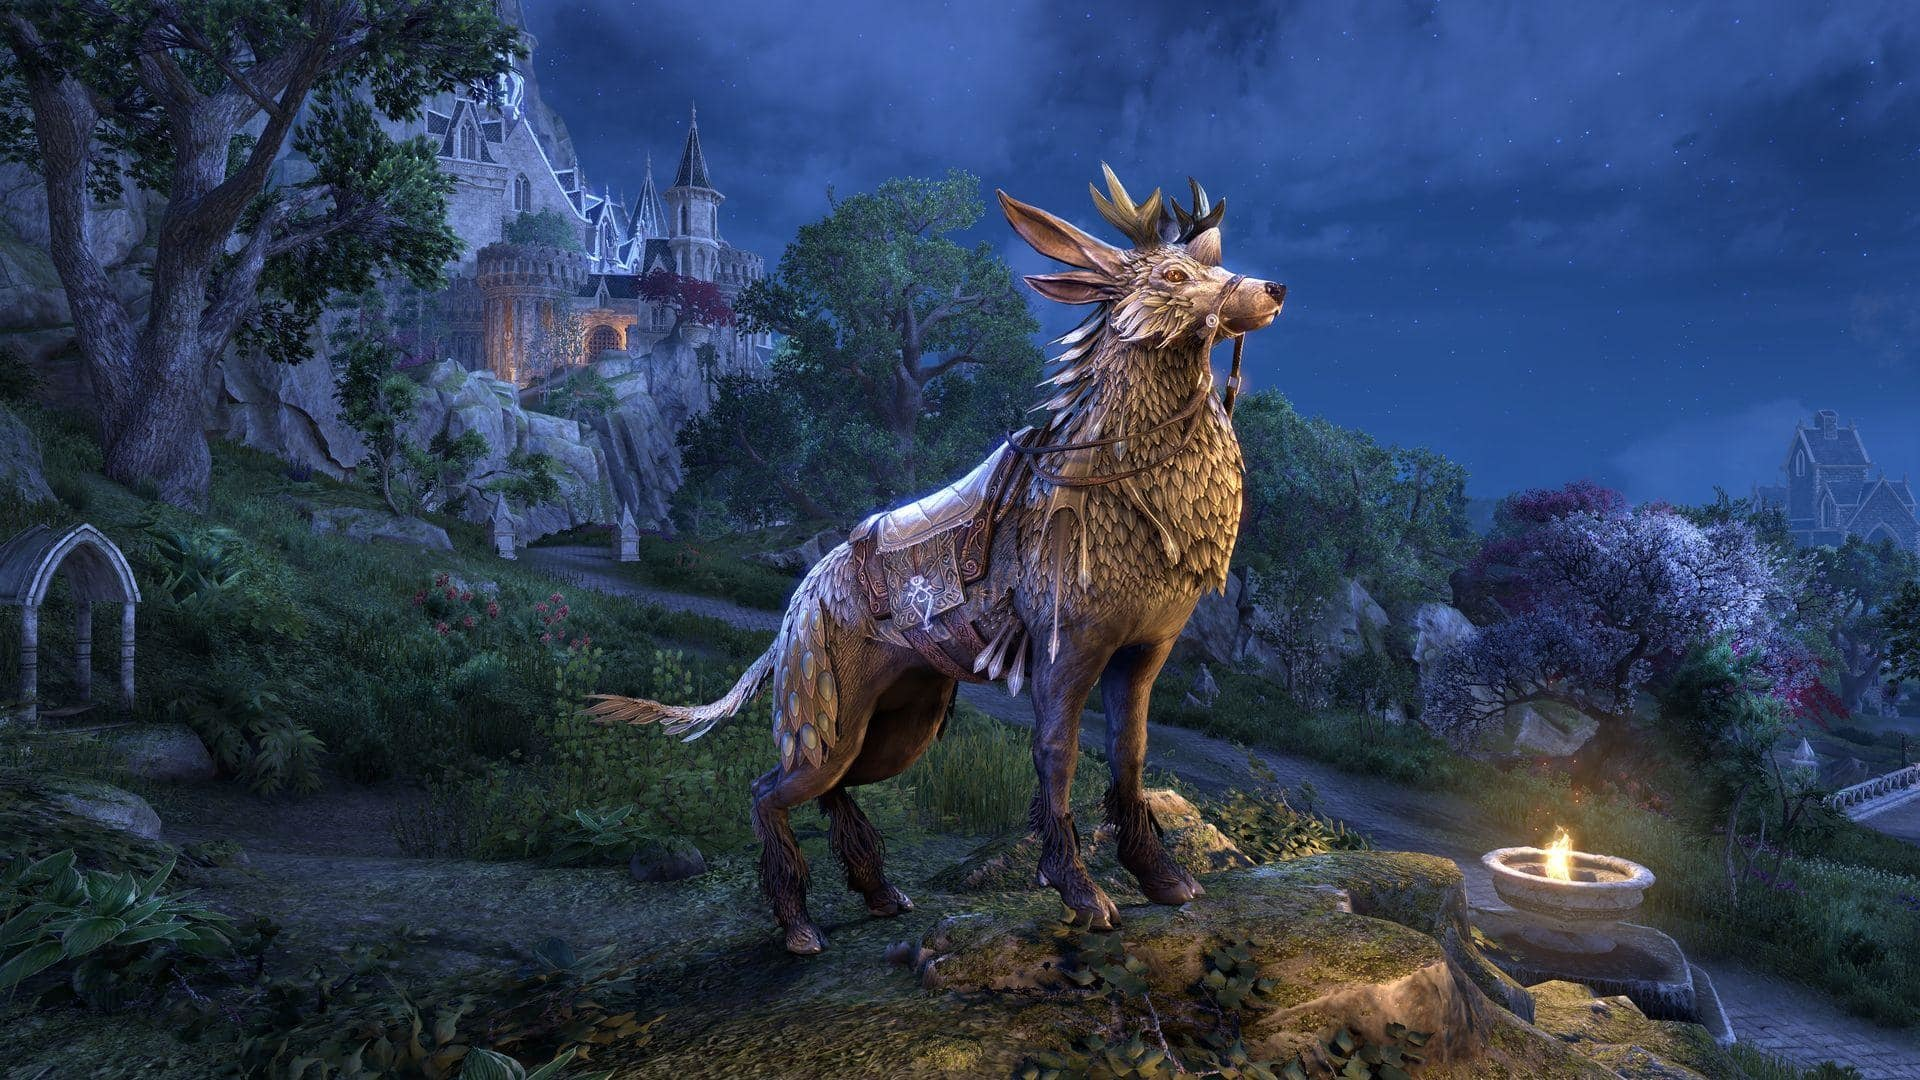 Jan 16 The Elder Scrolls Online heads to Elsweyr, land of cats